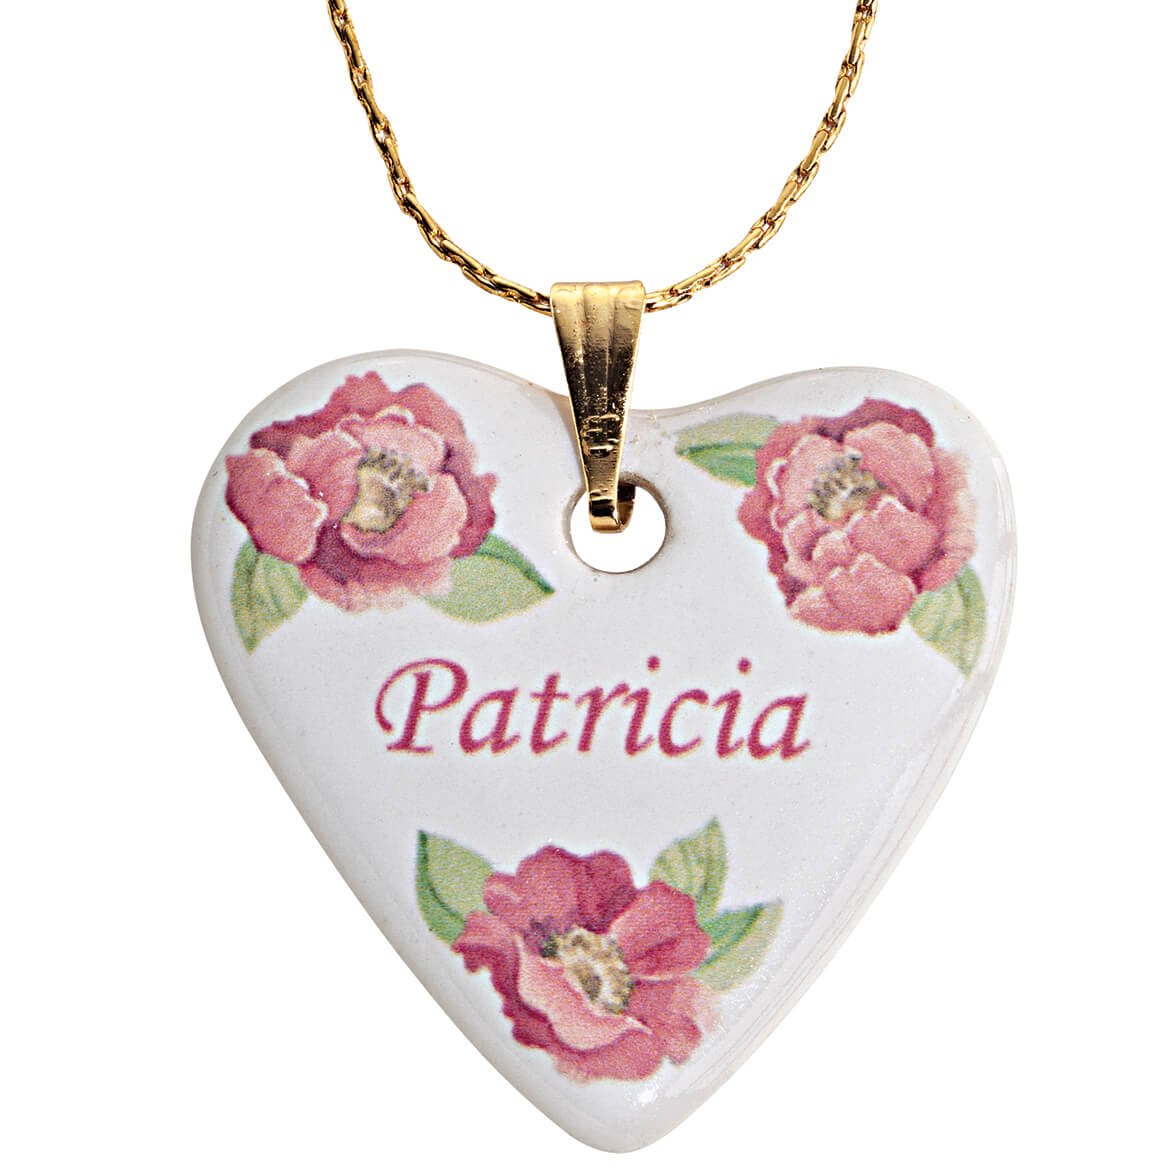 Personalized Porcelain Heart Necklace With Chain-351222